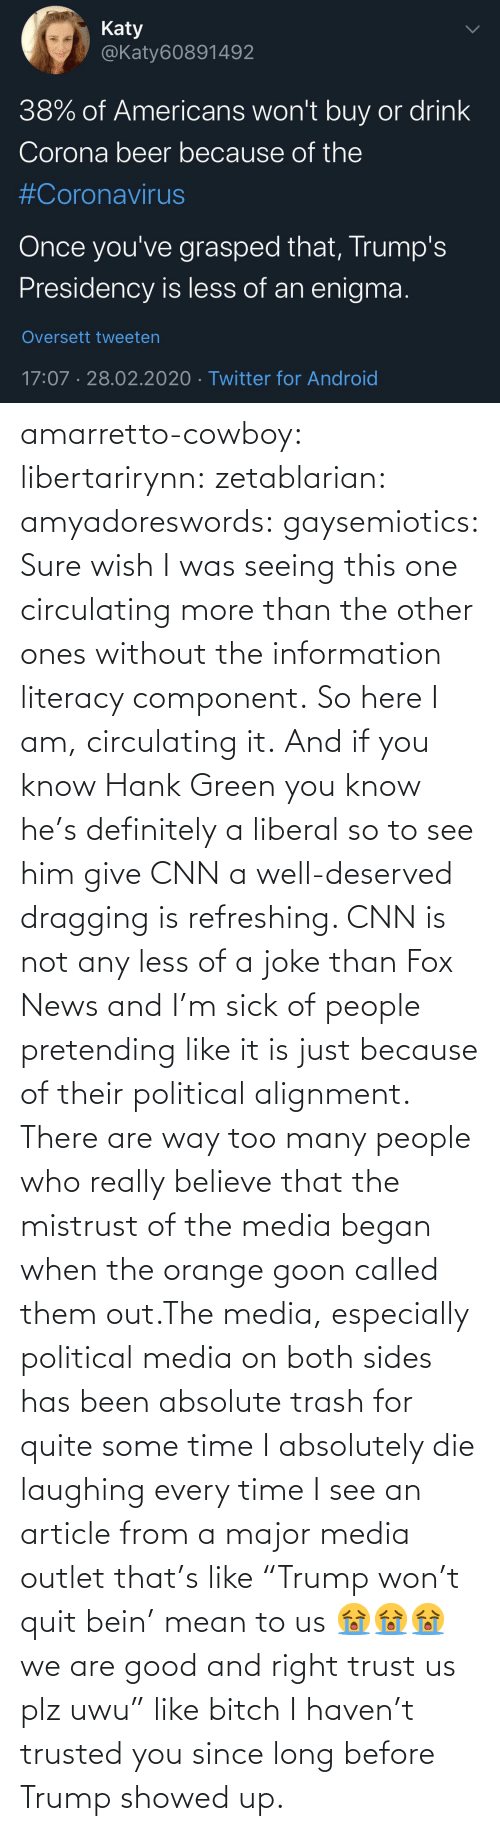 "Information: amarretto-cowboy:  libertarirynn:  zetablarian:  amyadoreswords:   gaysemiotics:       Sure wish I was seeing this one circulating more than the other ones without the information literacy component. So here I am, circulating it.    And if you know Hank Green you know he's definitely a liberal so to see him give CNN a well-deserved dragging is refreshing. CNN is not any less of a joke than Fox News and I'm sick of people pretending like it is just because of their political alignment.   There are way too many people who really believe that the mistrust of the media began when the orange goon called them out.The media, especially political media on both sides has been absolute trash for quite some time   I absolutely die laughing every time I see an article from a major media outlet that's like ""Trump won't quit bein' mean to us 😭😭😭 we are good and right trust us plz uwu"" like bitch I haven't trusted you since long before Trump showed up."